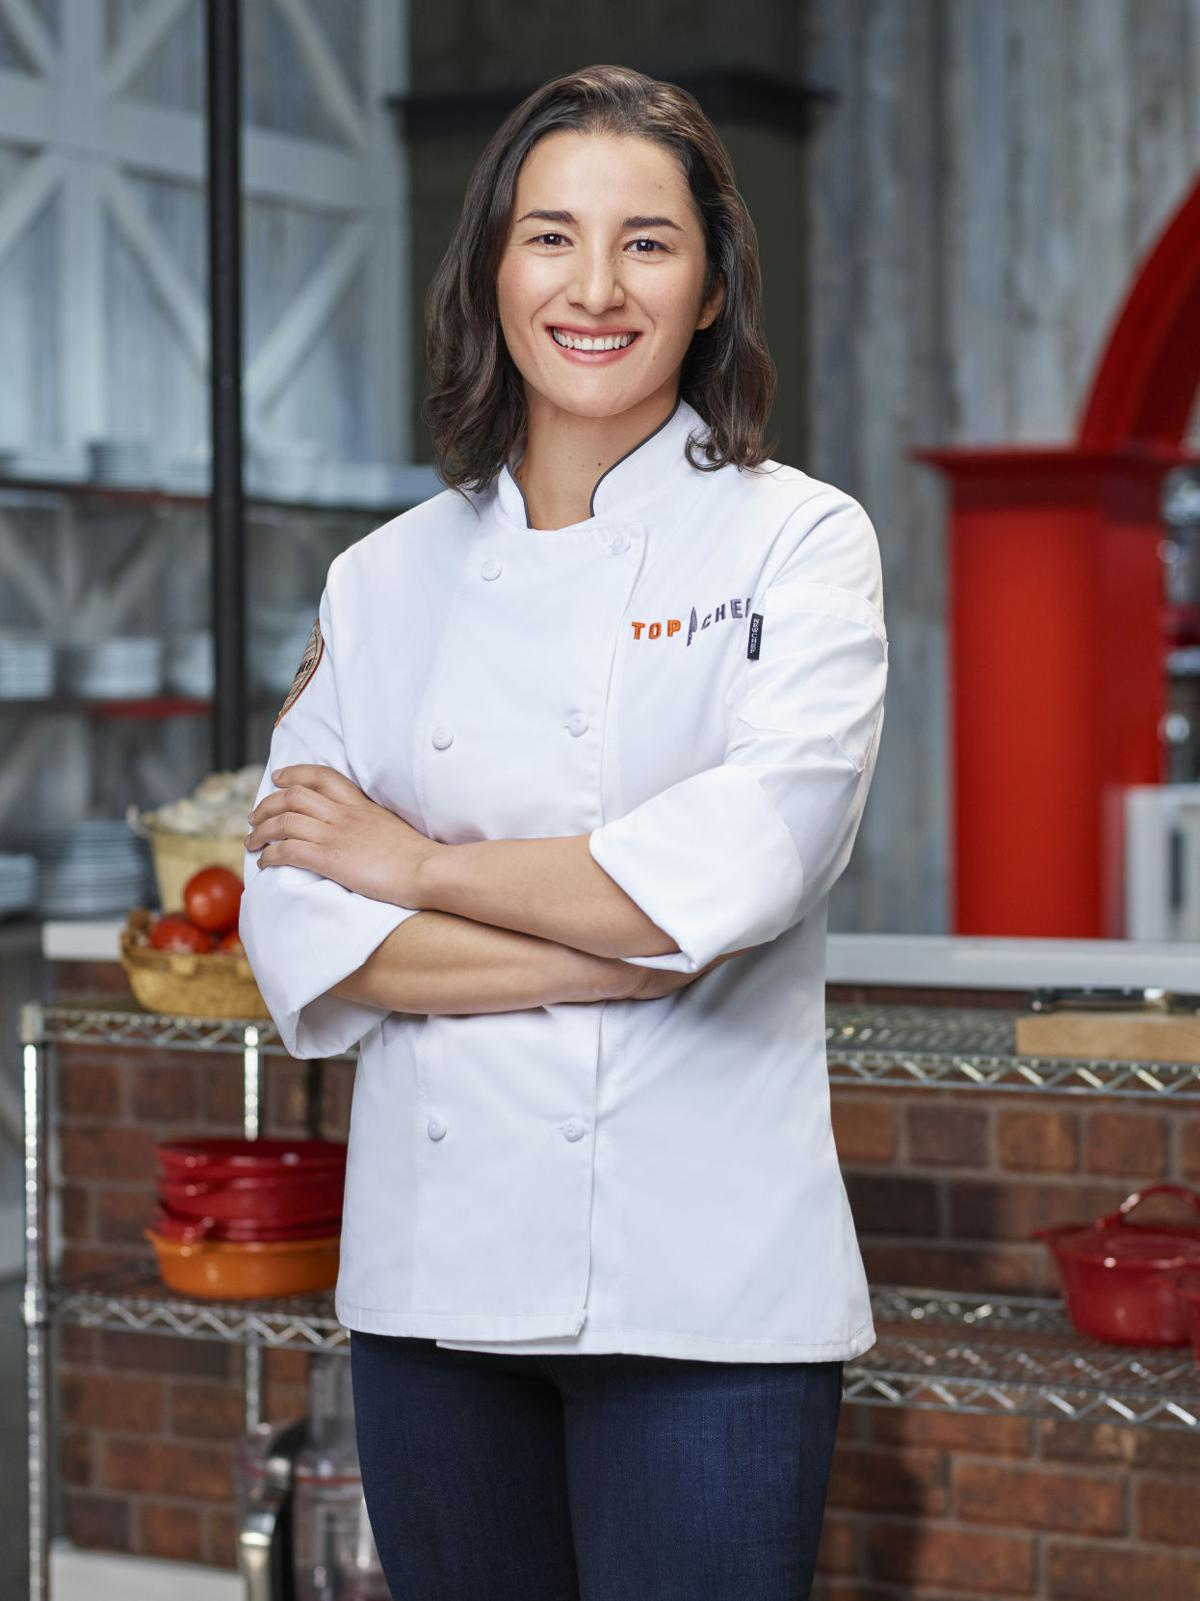 Lodi native on 'Top Chef' TV competition